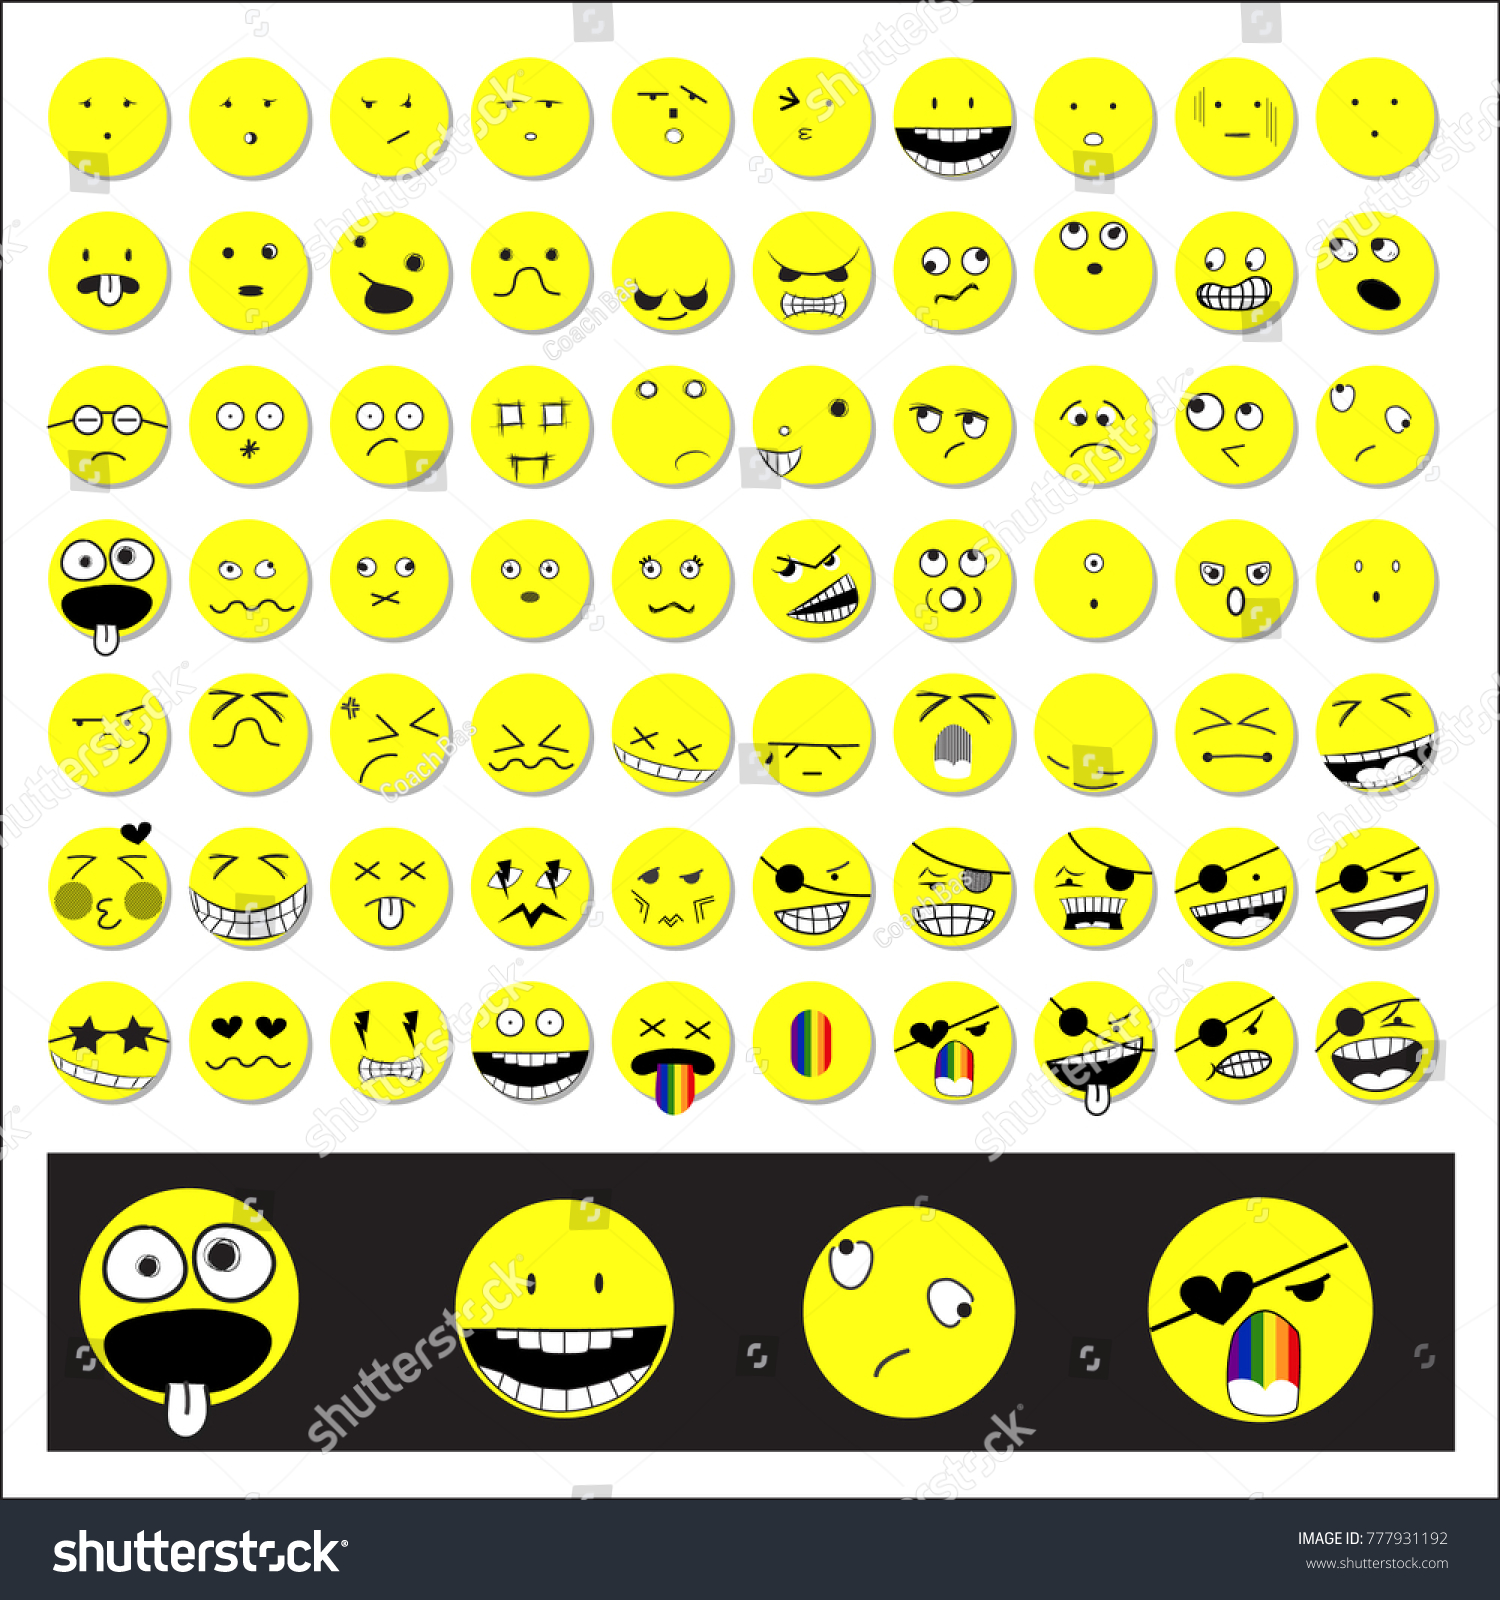 Great Set70 Anime Emotion Isolated On White Emoji For Web Pirate And Compassion